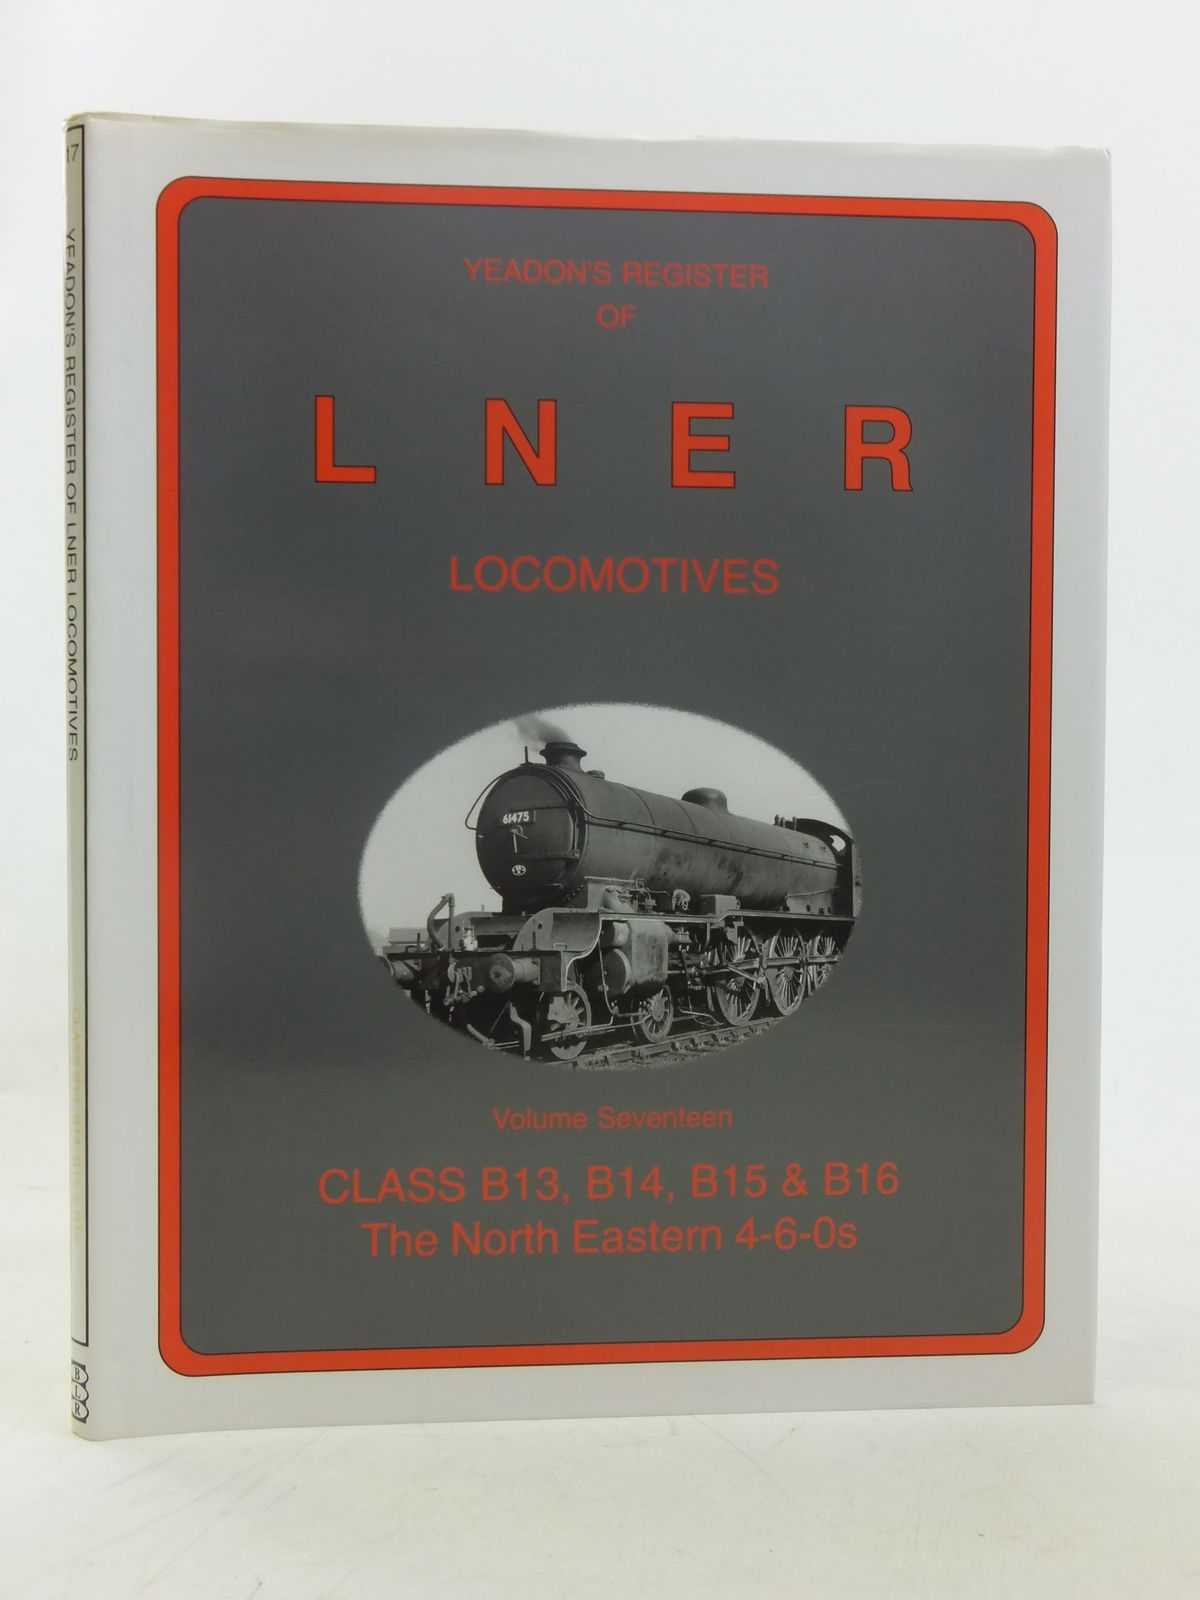 Photo of YEADON'S REGISTER OF LNER LOCOMOTIVES VOLUME SEVENTEEN published by Book Law Publications, Challenger Publications (STOCK CODE: 1606885)  for sale by Stella & Rose's Books